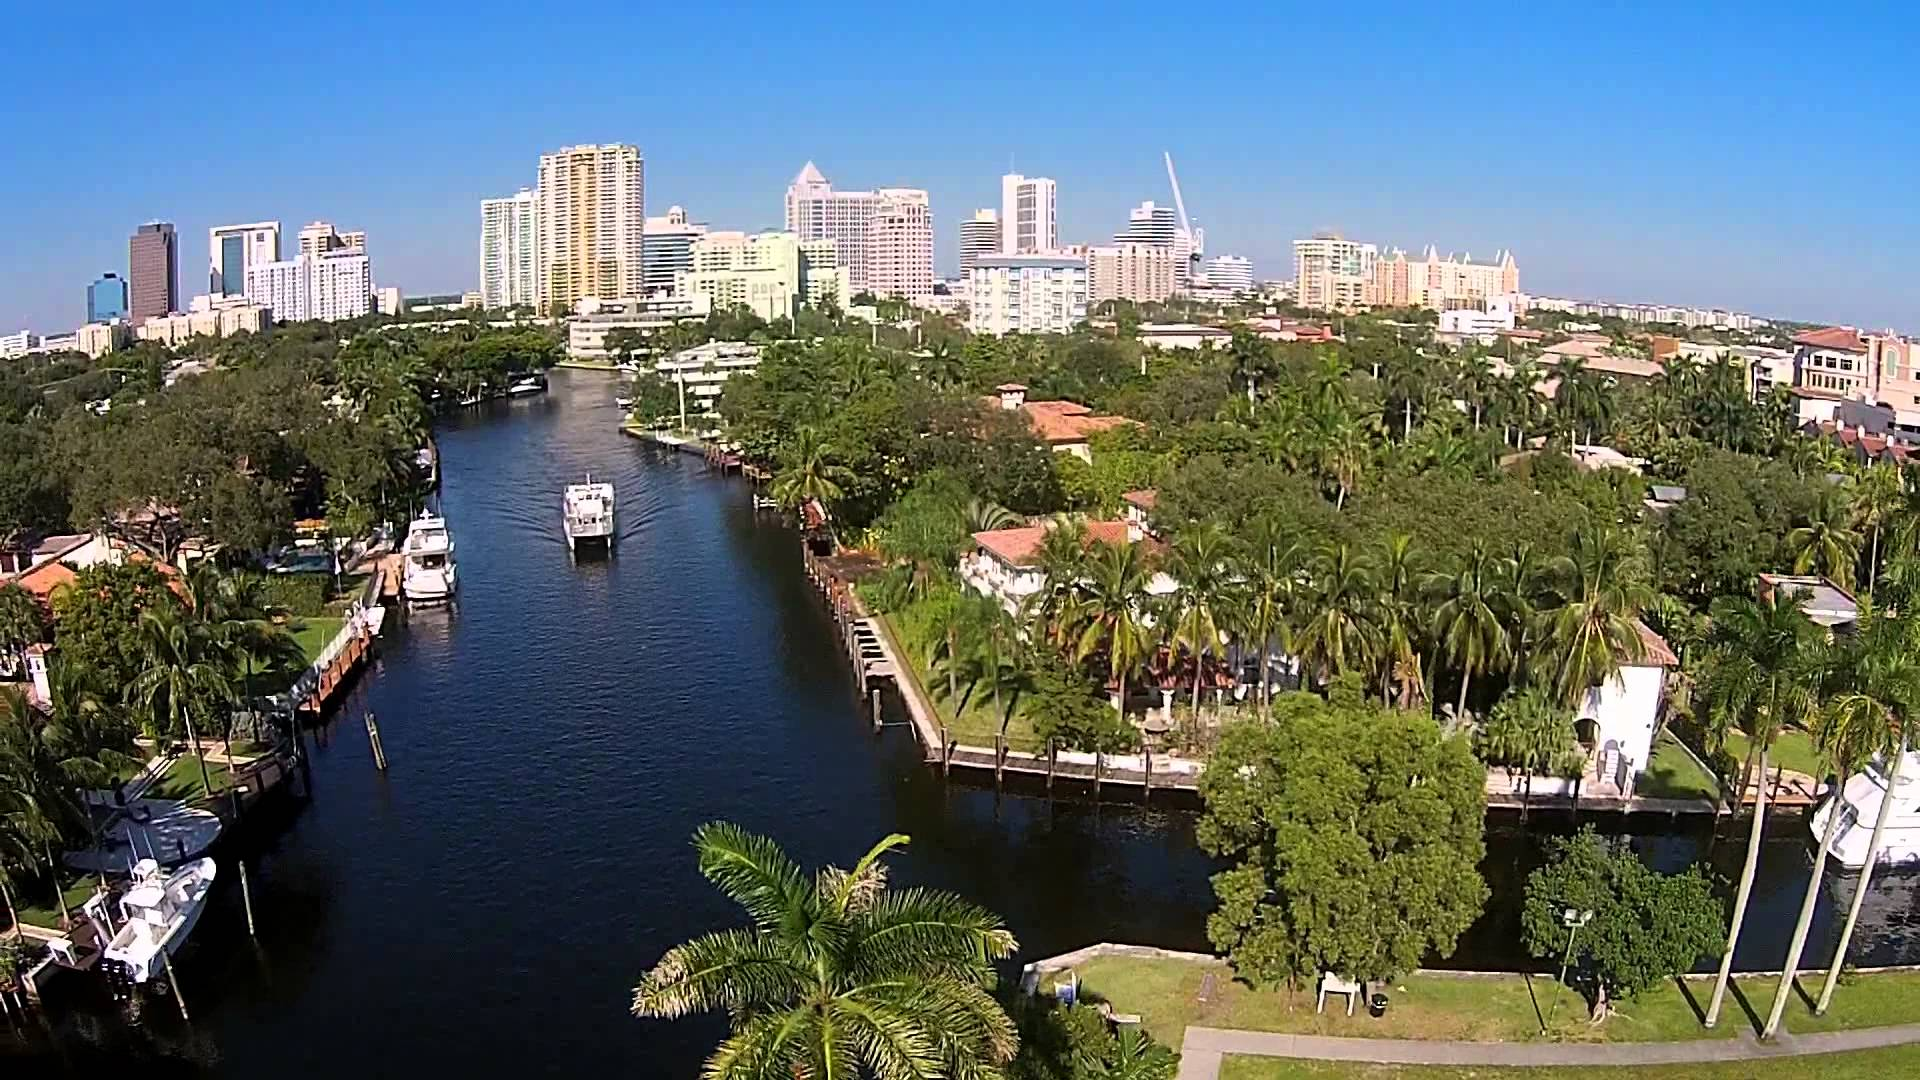 Fla. has 4 of top 5 'hottest' single-family markets